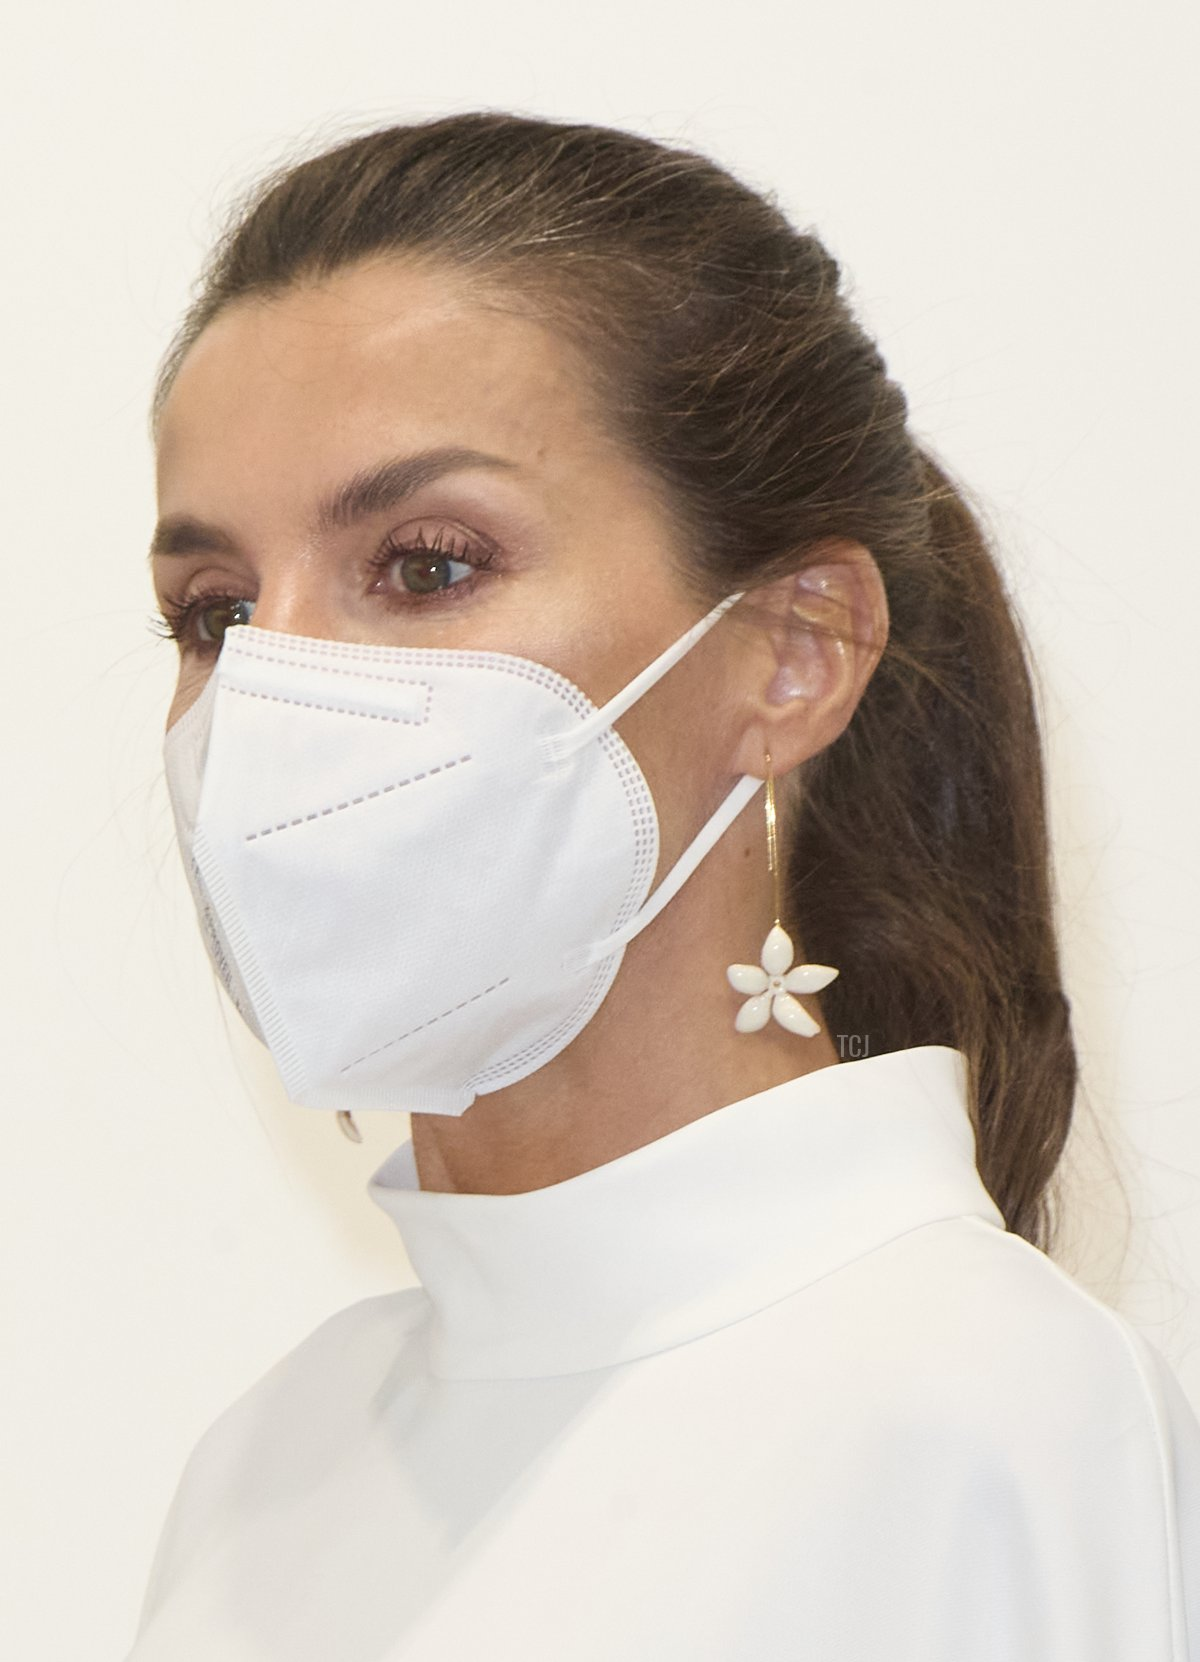 Queen Letizia of Spain attends the opening of ARCO 2021 (Contemporary Art Fair) at Ifema on July 08, 2021 in Madrid, Spain